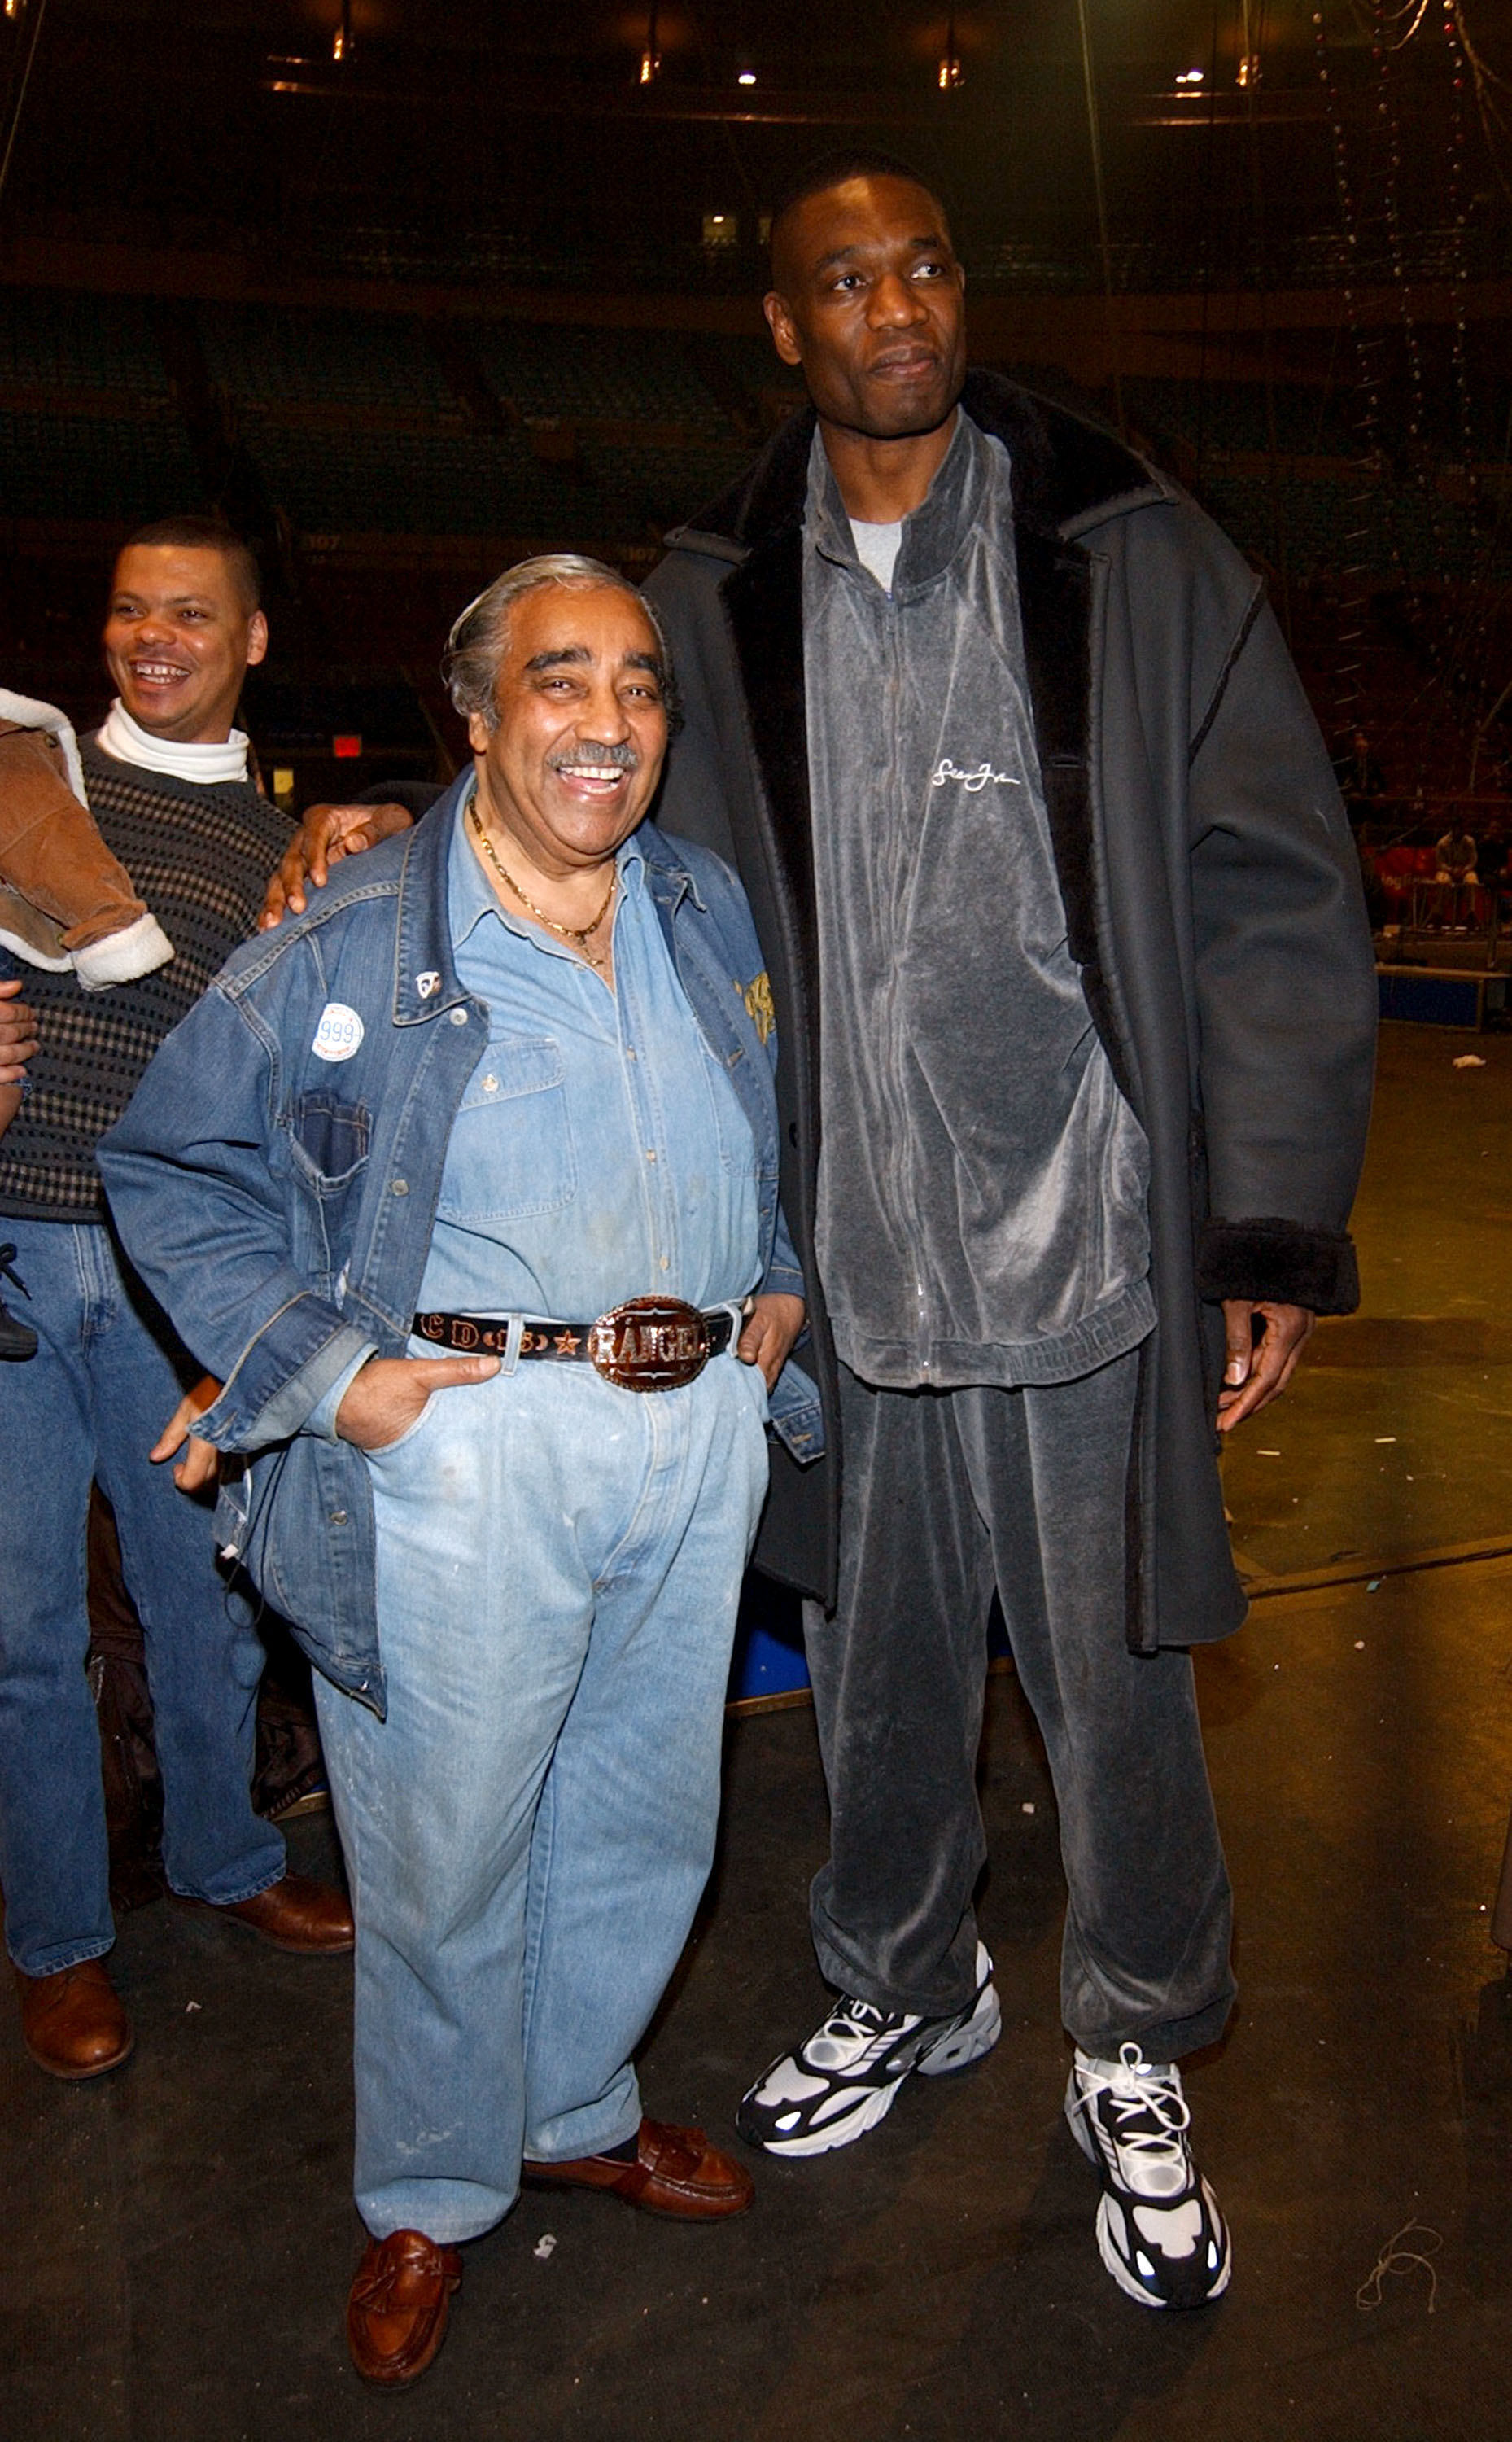 Congressman Charles Rangel and basketball star Dikembe Mutombo during Ringling Bros. and Barnum & Bailey: The 134th Edition of The Greatest Show On Earth at Madison Square Garden in New York City on March 20, 2004.